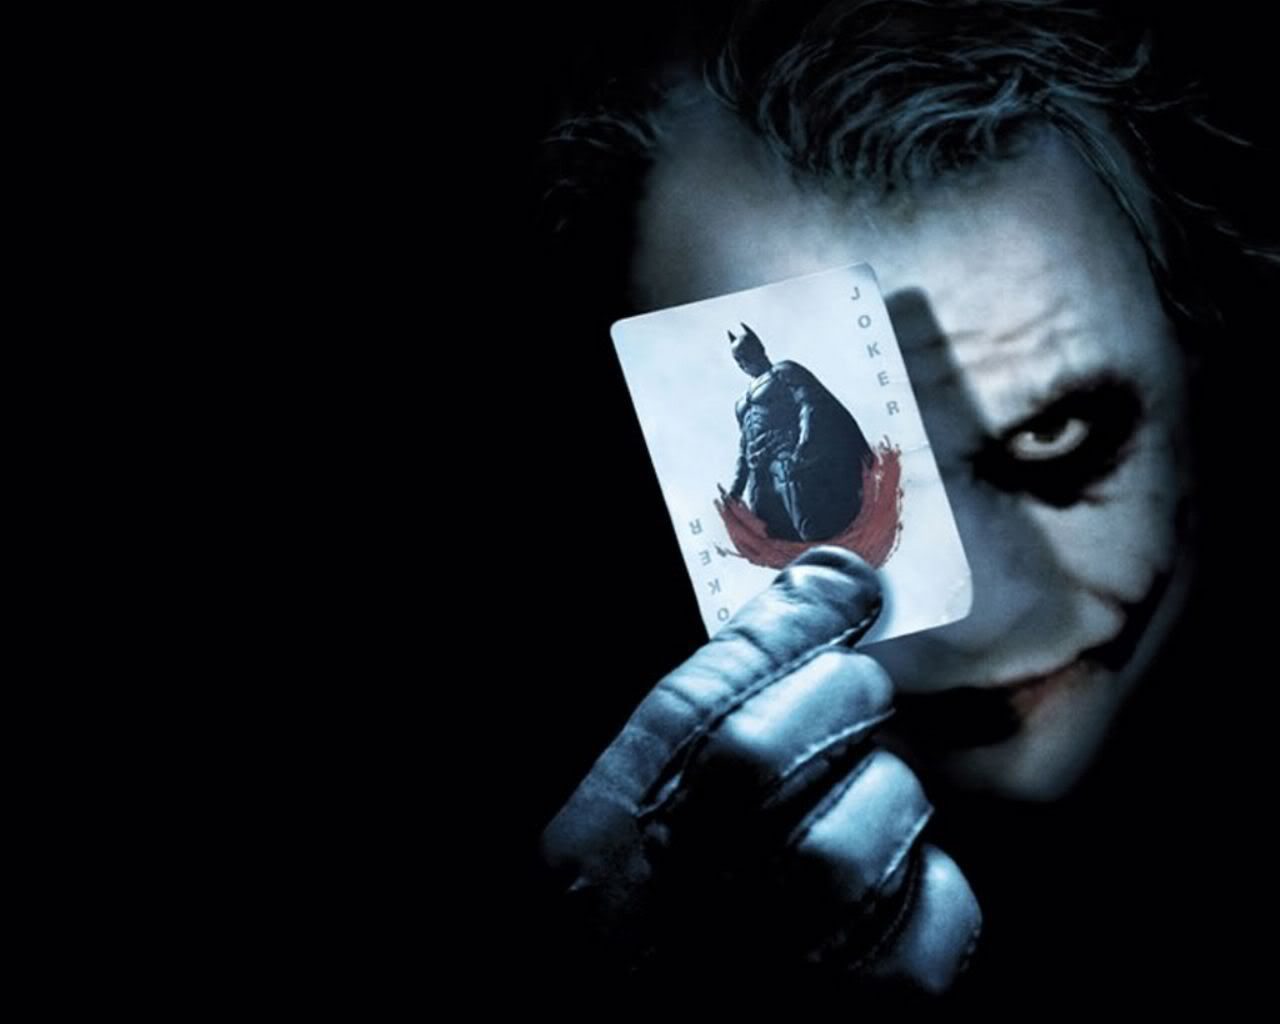 Joker Holding Batman Card Portrait Wallpaper 1280x1024